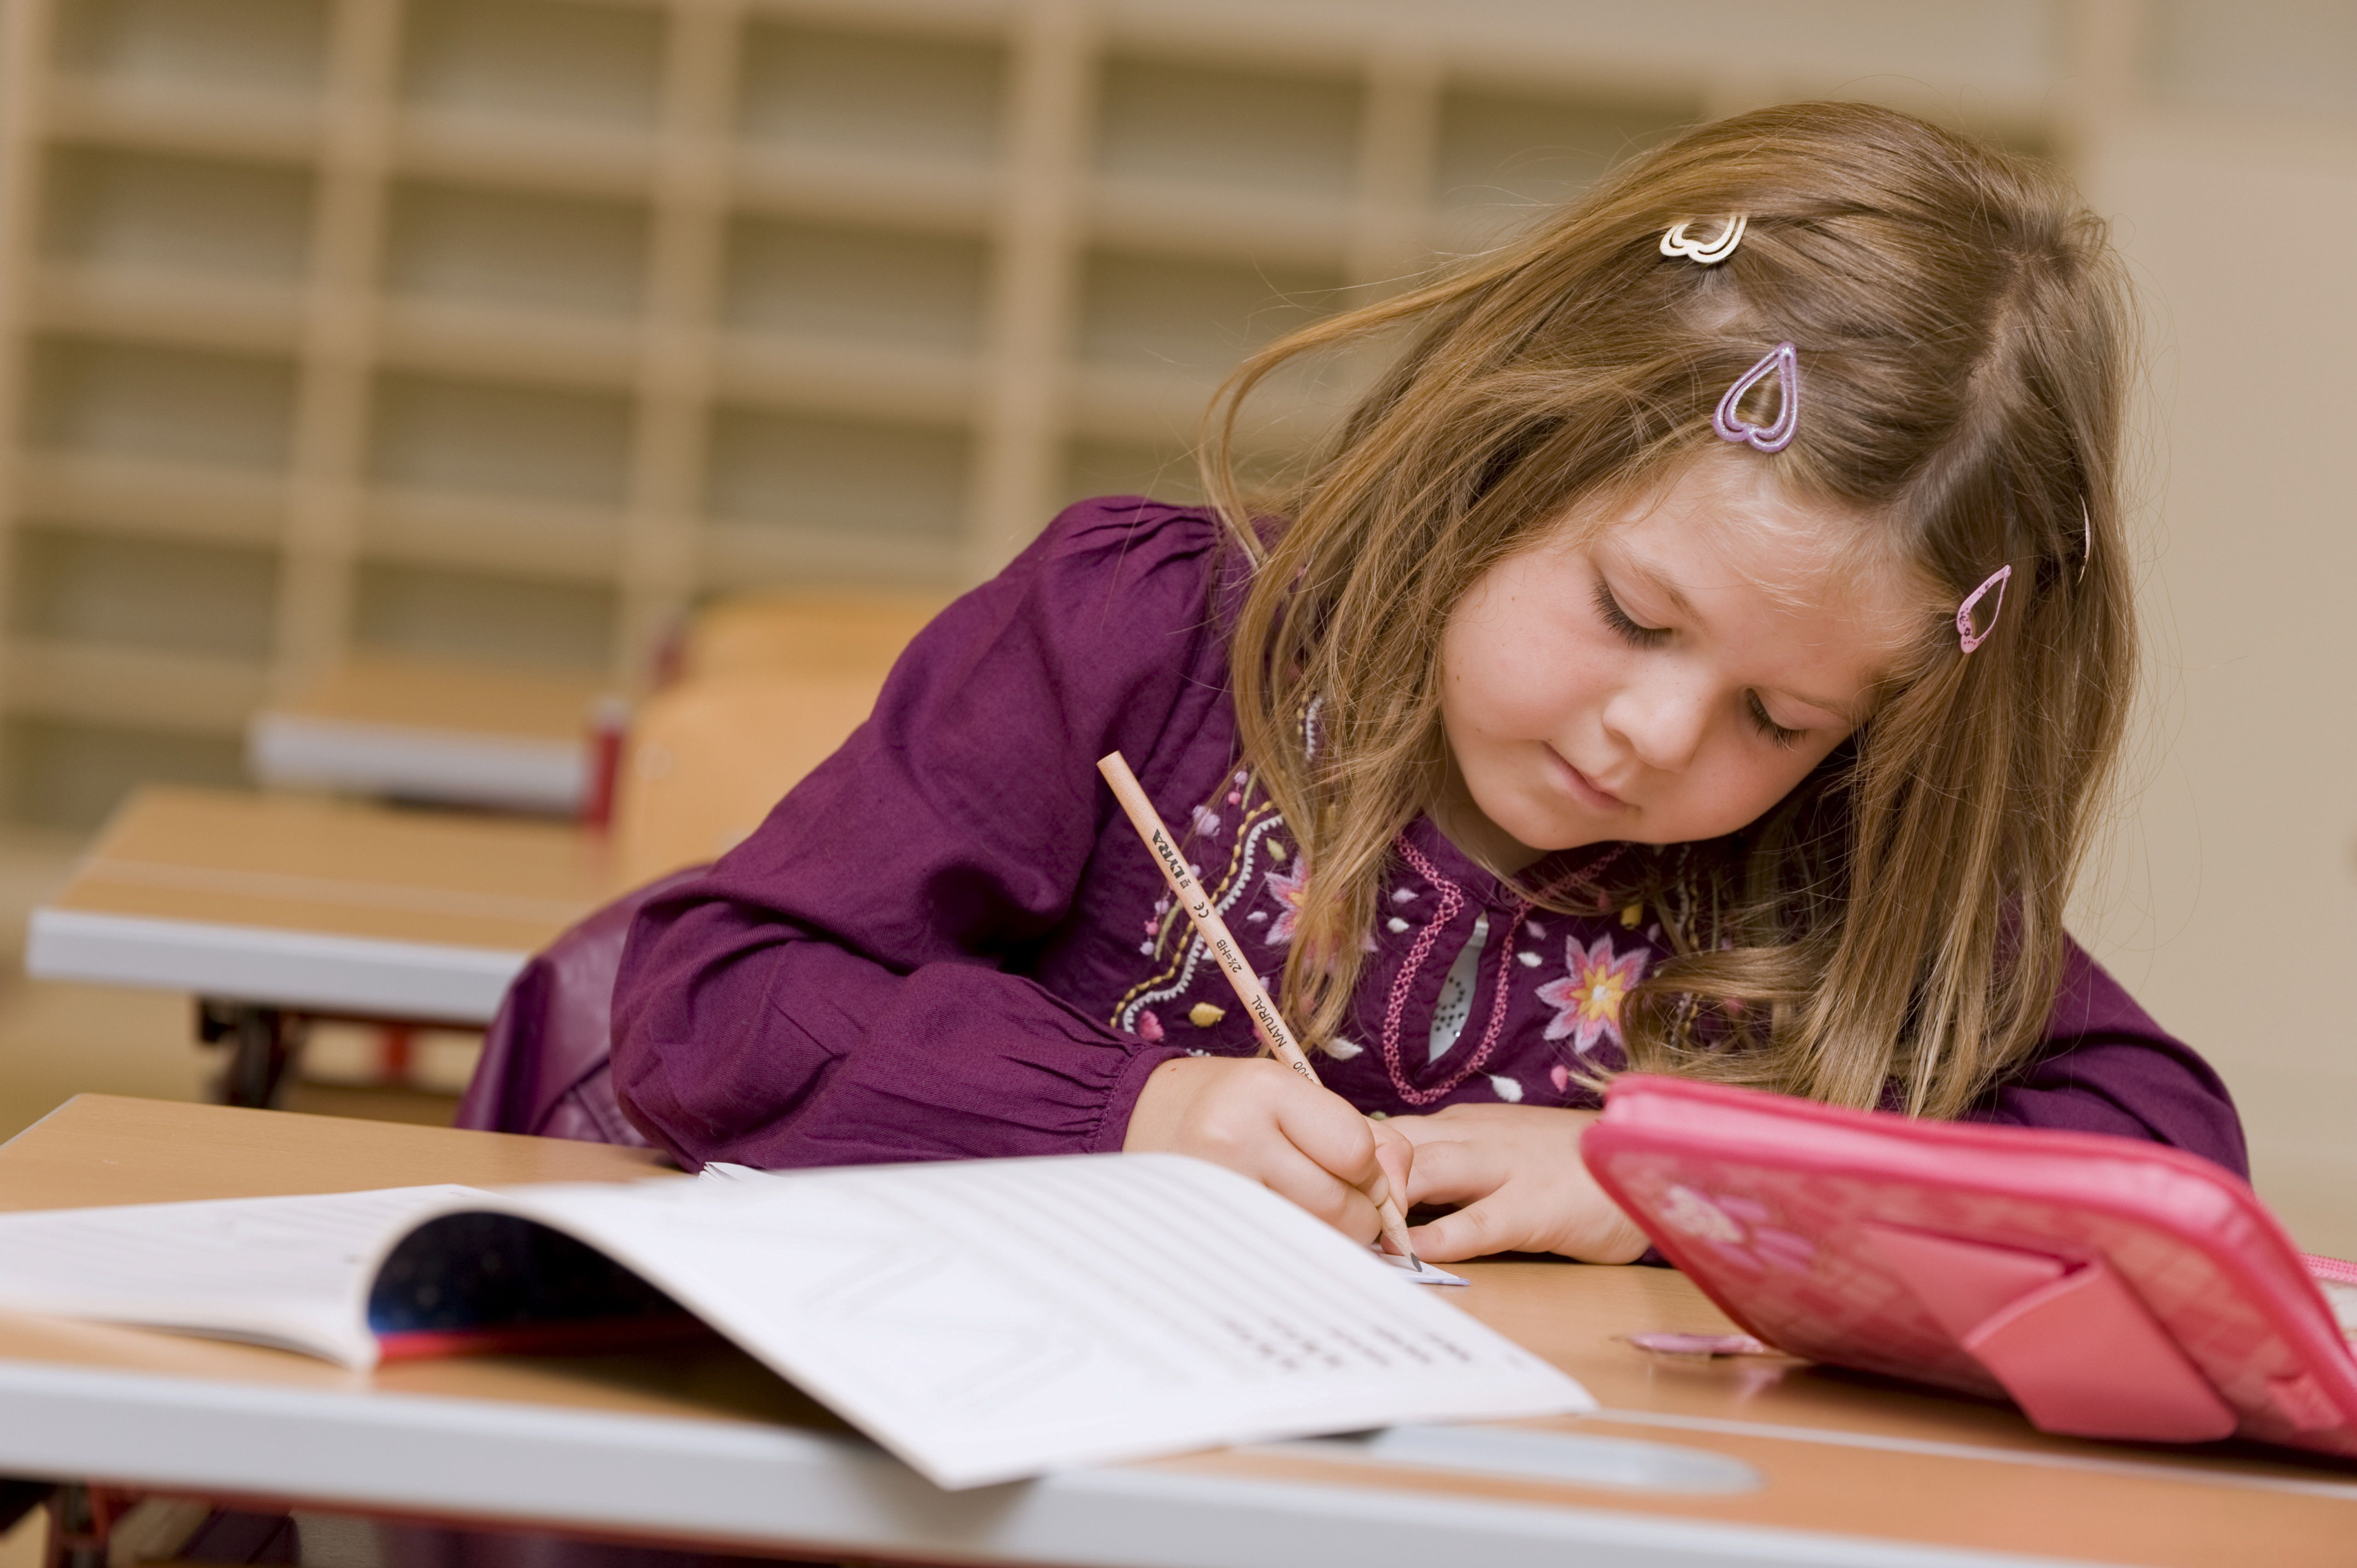 First grader during a lesson